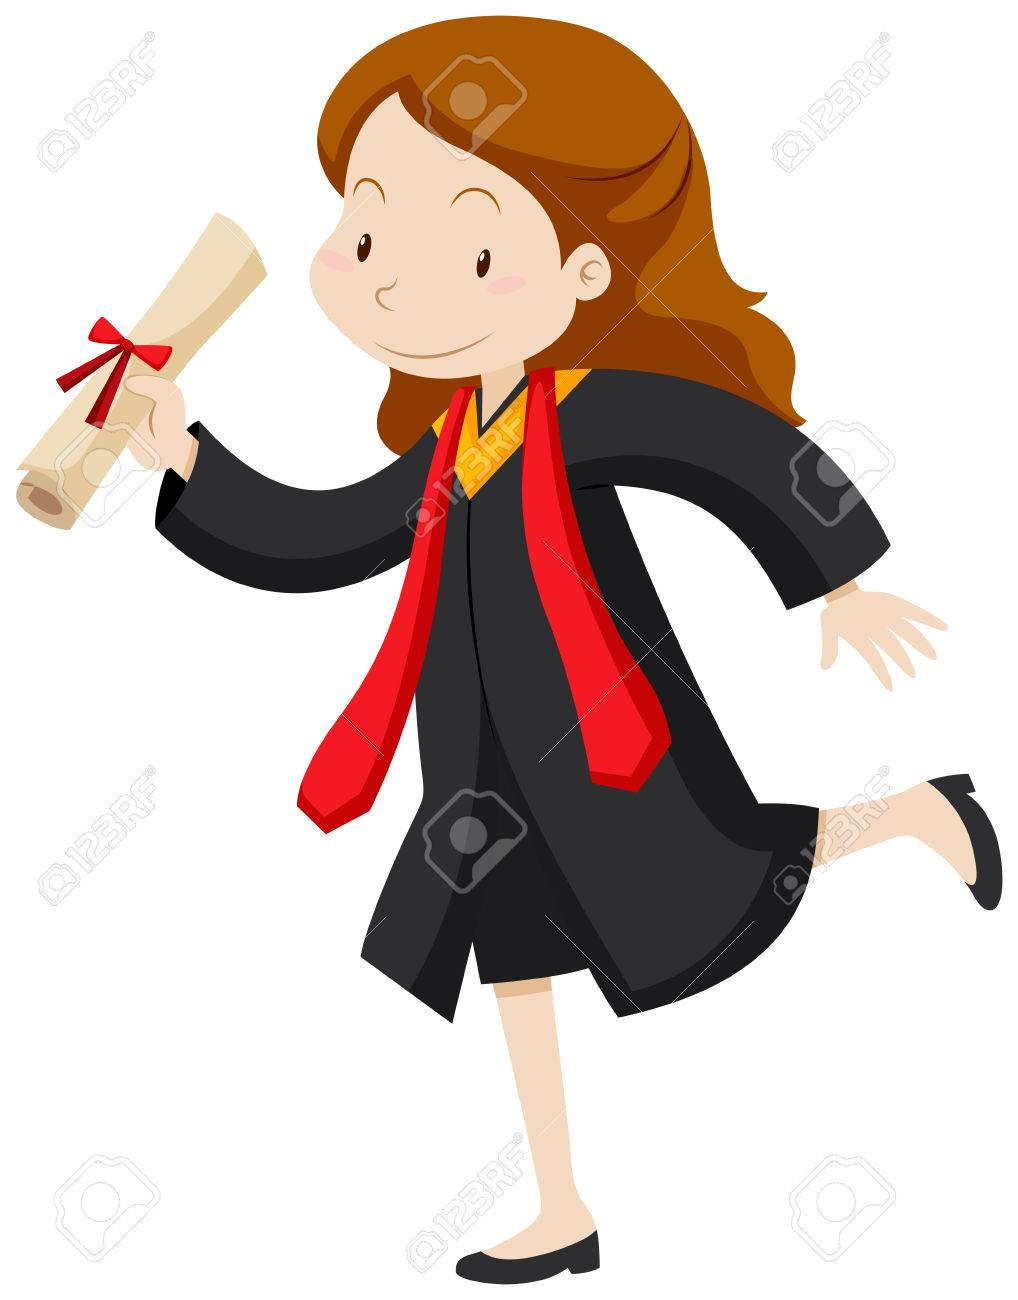 Woman In Graduation Gown Holding Degree Illustration Royalty Free ...